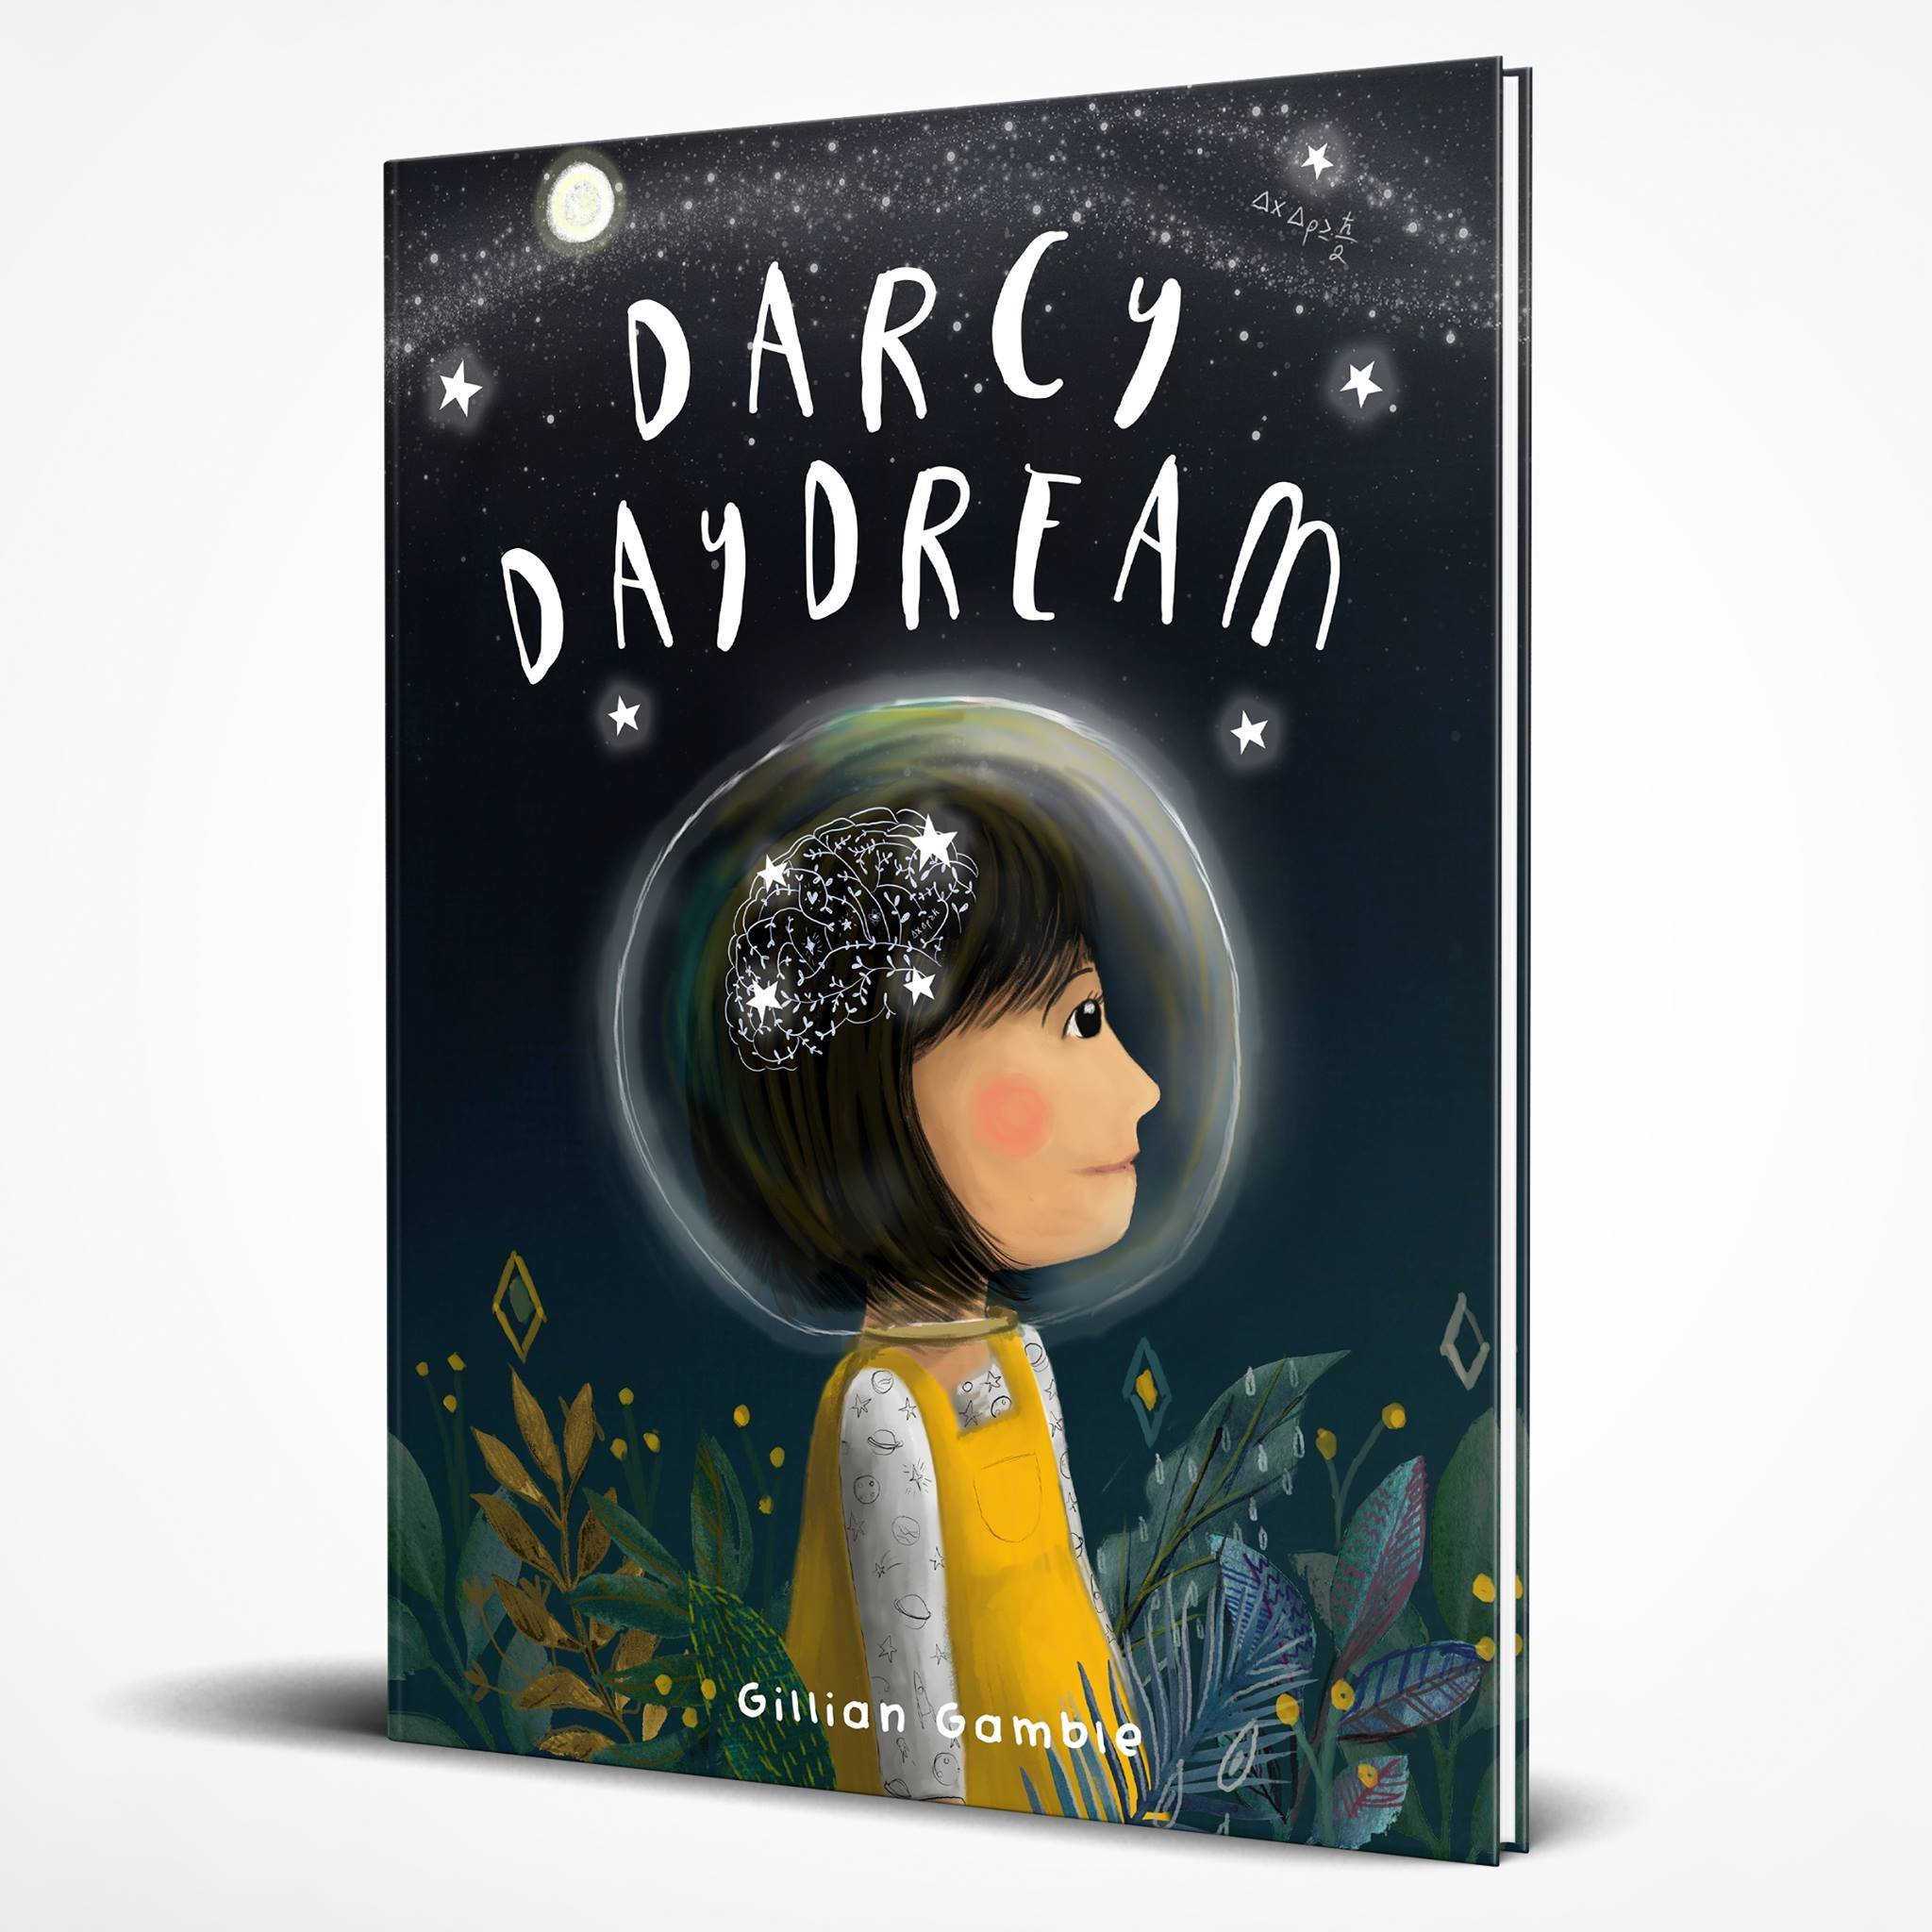 My new book 'Darcy Daydream' will be published by Bobble Hat Books in late 2019.    What happens when we realise for the first time that we are just a little speck of stardust in an infinite universe? How do we make sense of things? How do we explore and wonder but still have a sense of safety?     Darcy is a small girl with a rich interior life, a vivid imagination and an endless supply of big questions, most of them unanswerable. Often said to have her 'head in the clouds', she spends countless hours in the safe world of her garden; daydreaming, building things and creating whole worlds inside her fantastical mind.    One day though, Darcy realises there is a LOT more world outside the garden. Her curiosity leads her to further and further new horizons until she finds herself out in space, constantly propelled by the same questioning and wonder that has caused humans to gaze up at the stars for thousands of years in search of meaning and adventure. What is out there? What is around the next corner?    This story is all about being 'ok' with questions and curiosity. This book deals gently with the concept that sometimes the 'great unknown' can be a little scary, but ultimately reminds children they can feel grounded by knowing they are loved by those around them and that the original safety of home is still there.